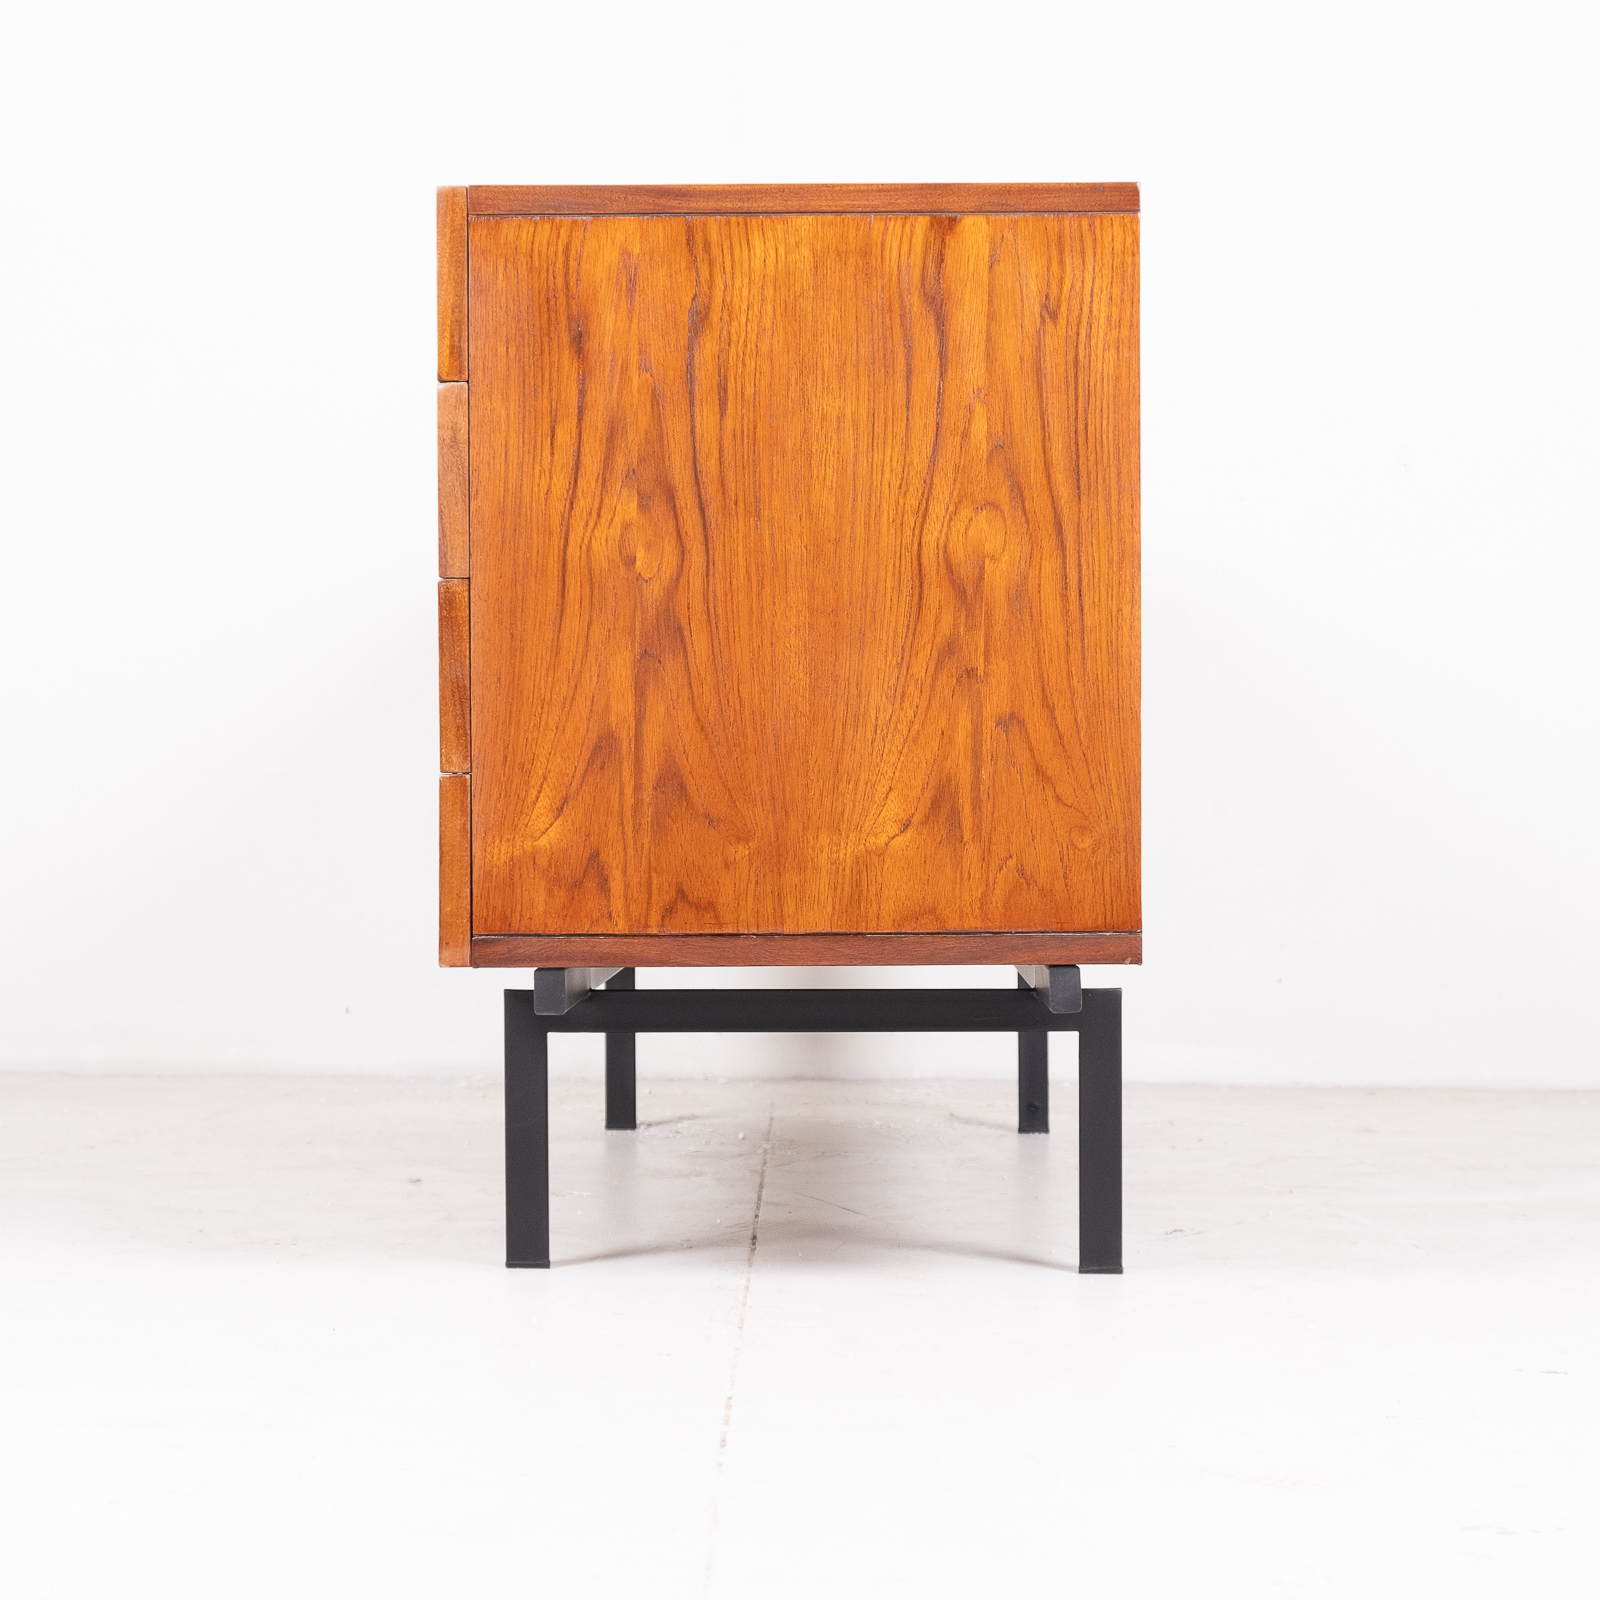 Du04 Japanese Series Sideboard By Cees Braakman For Pastoe, 1950s, The Netherlands2